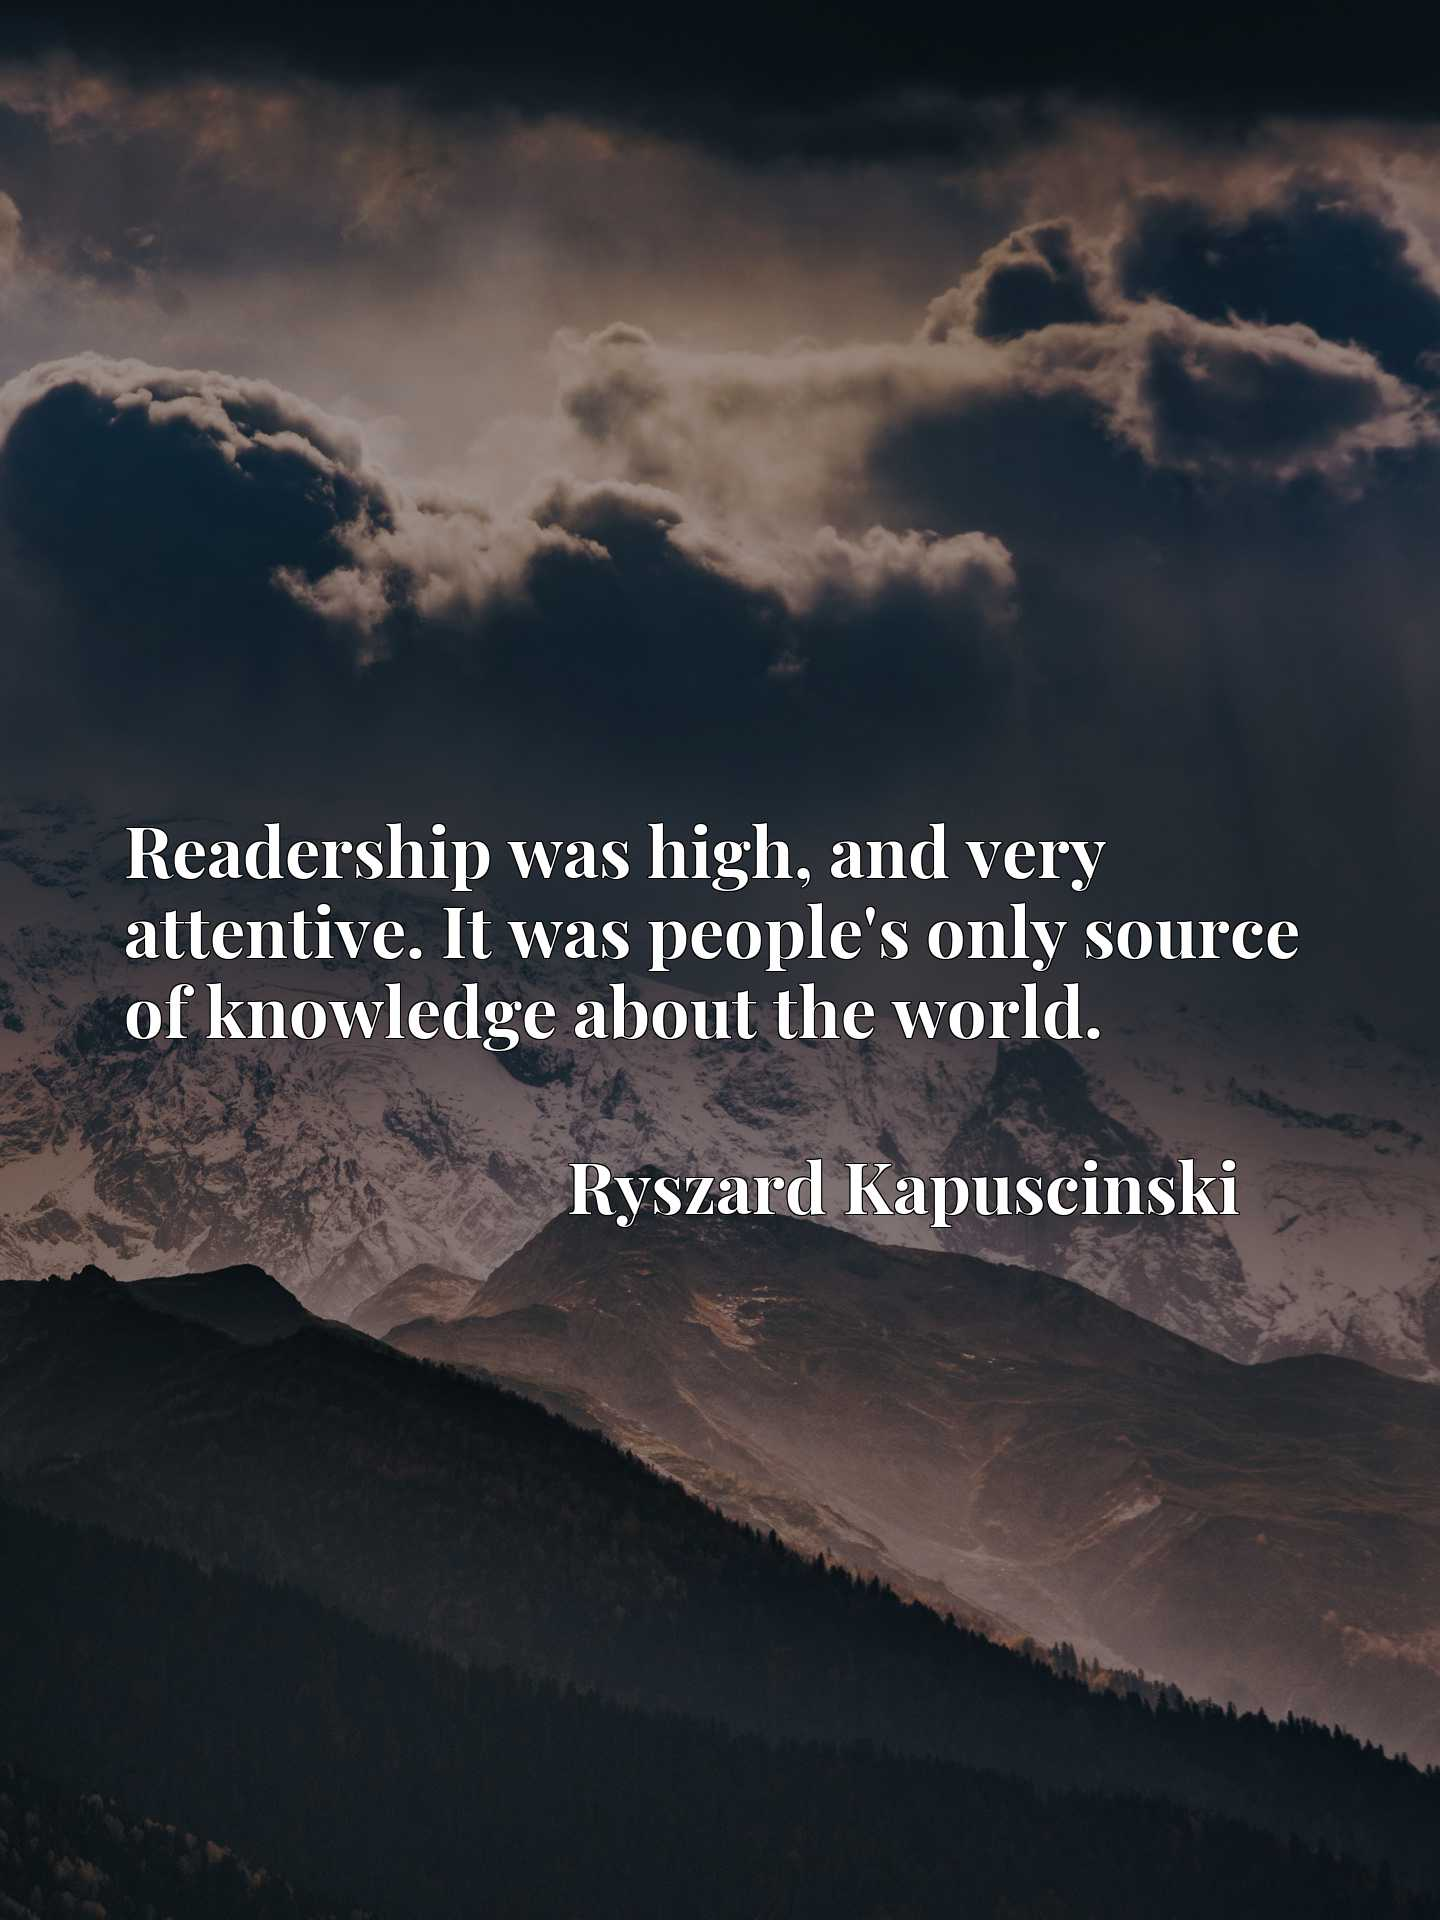 Quote Picture :Readership was high, and very attentive. It was people's only source of knowledge about the world.